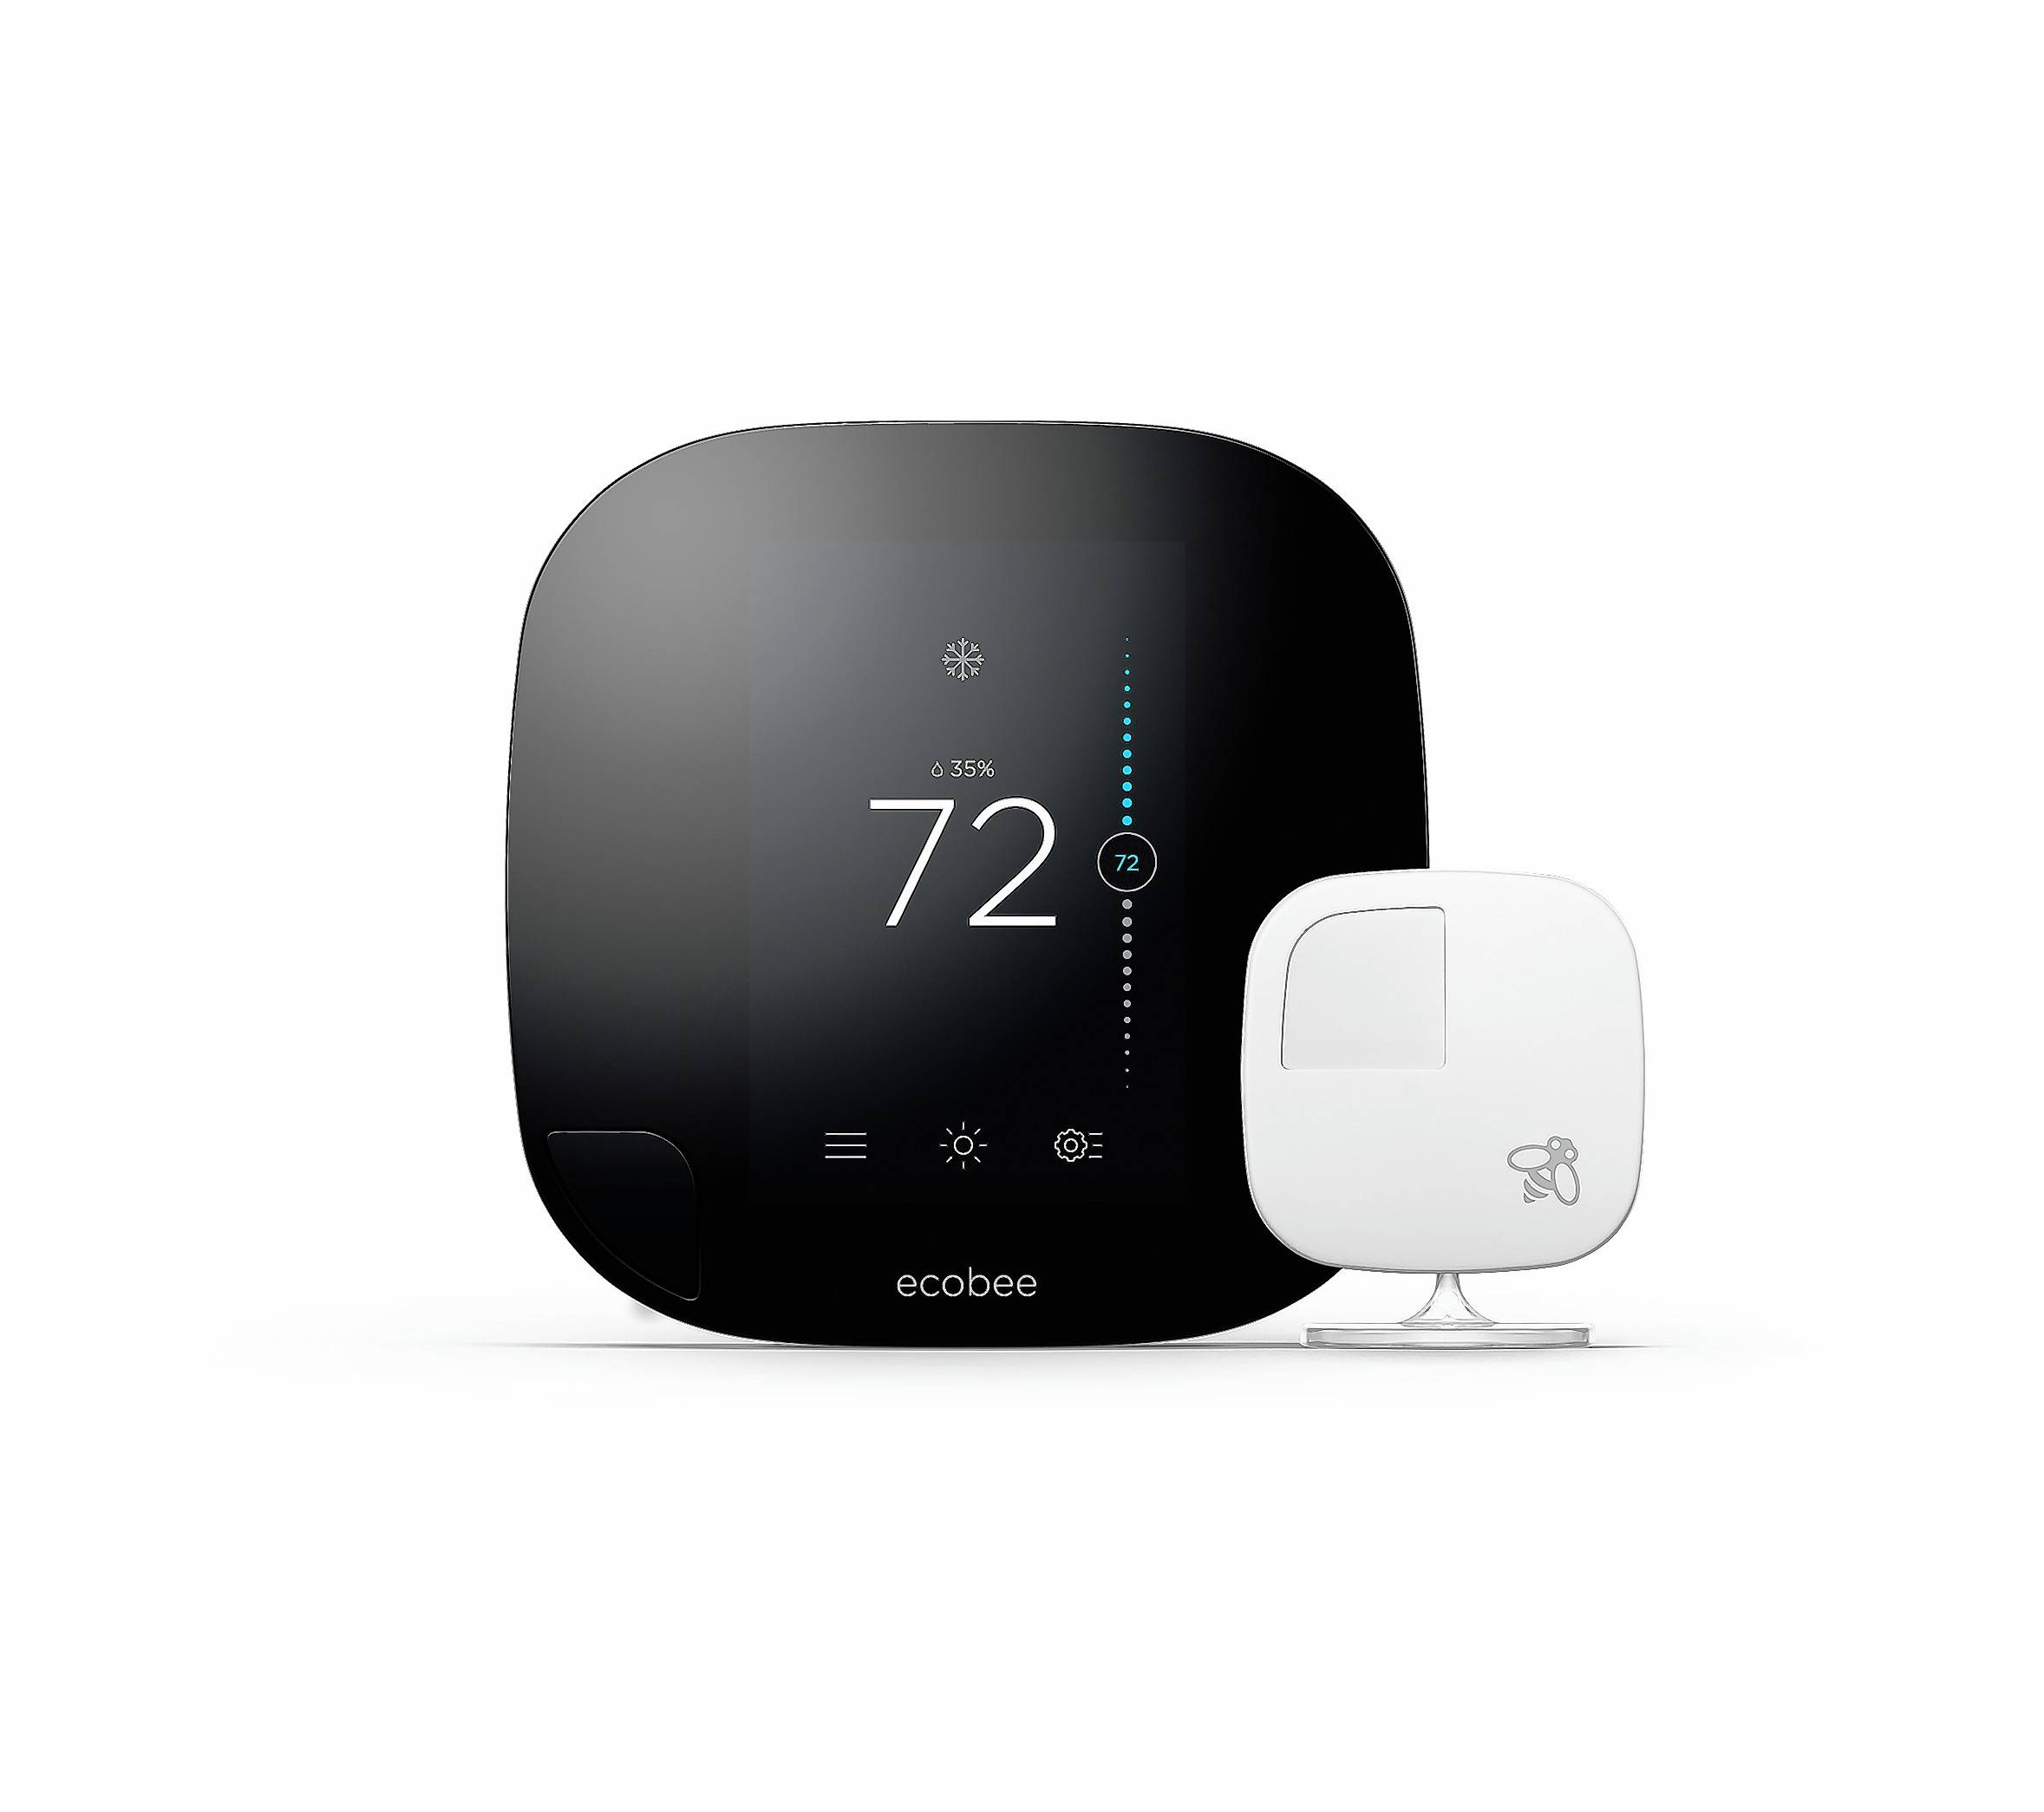 The Ecobee thermostat integrates with Amazon's Alexa home assistant and Apple's Siri.